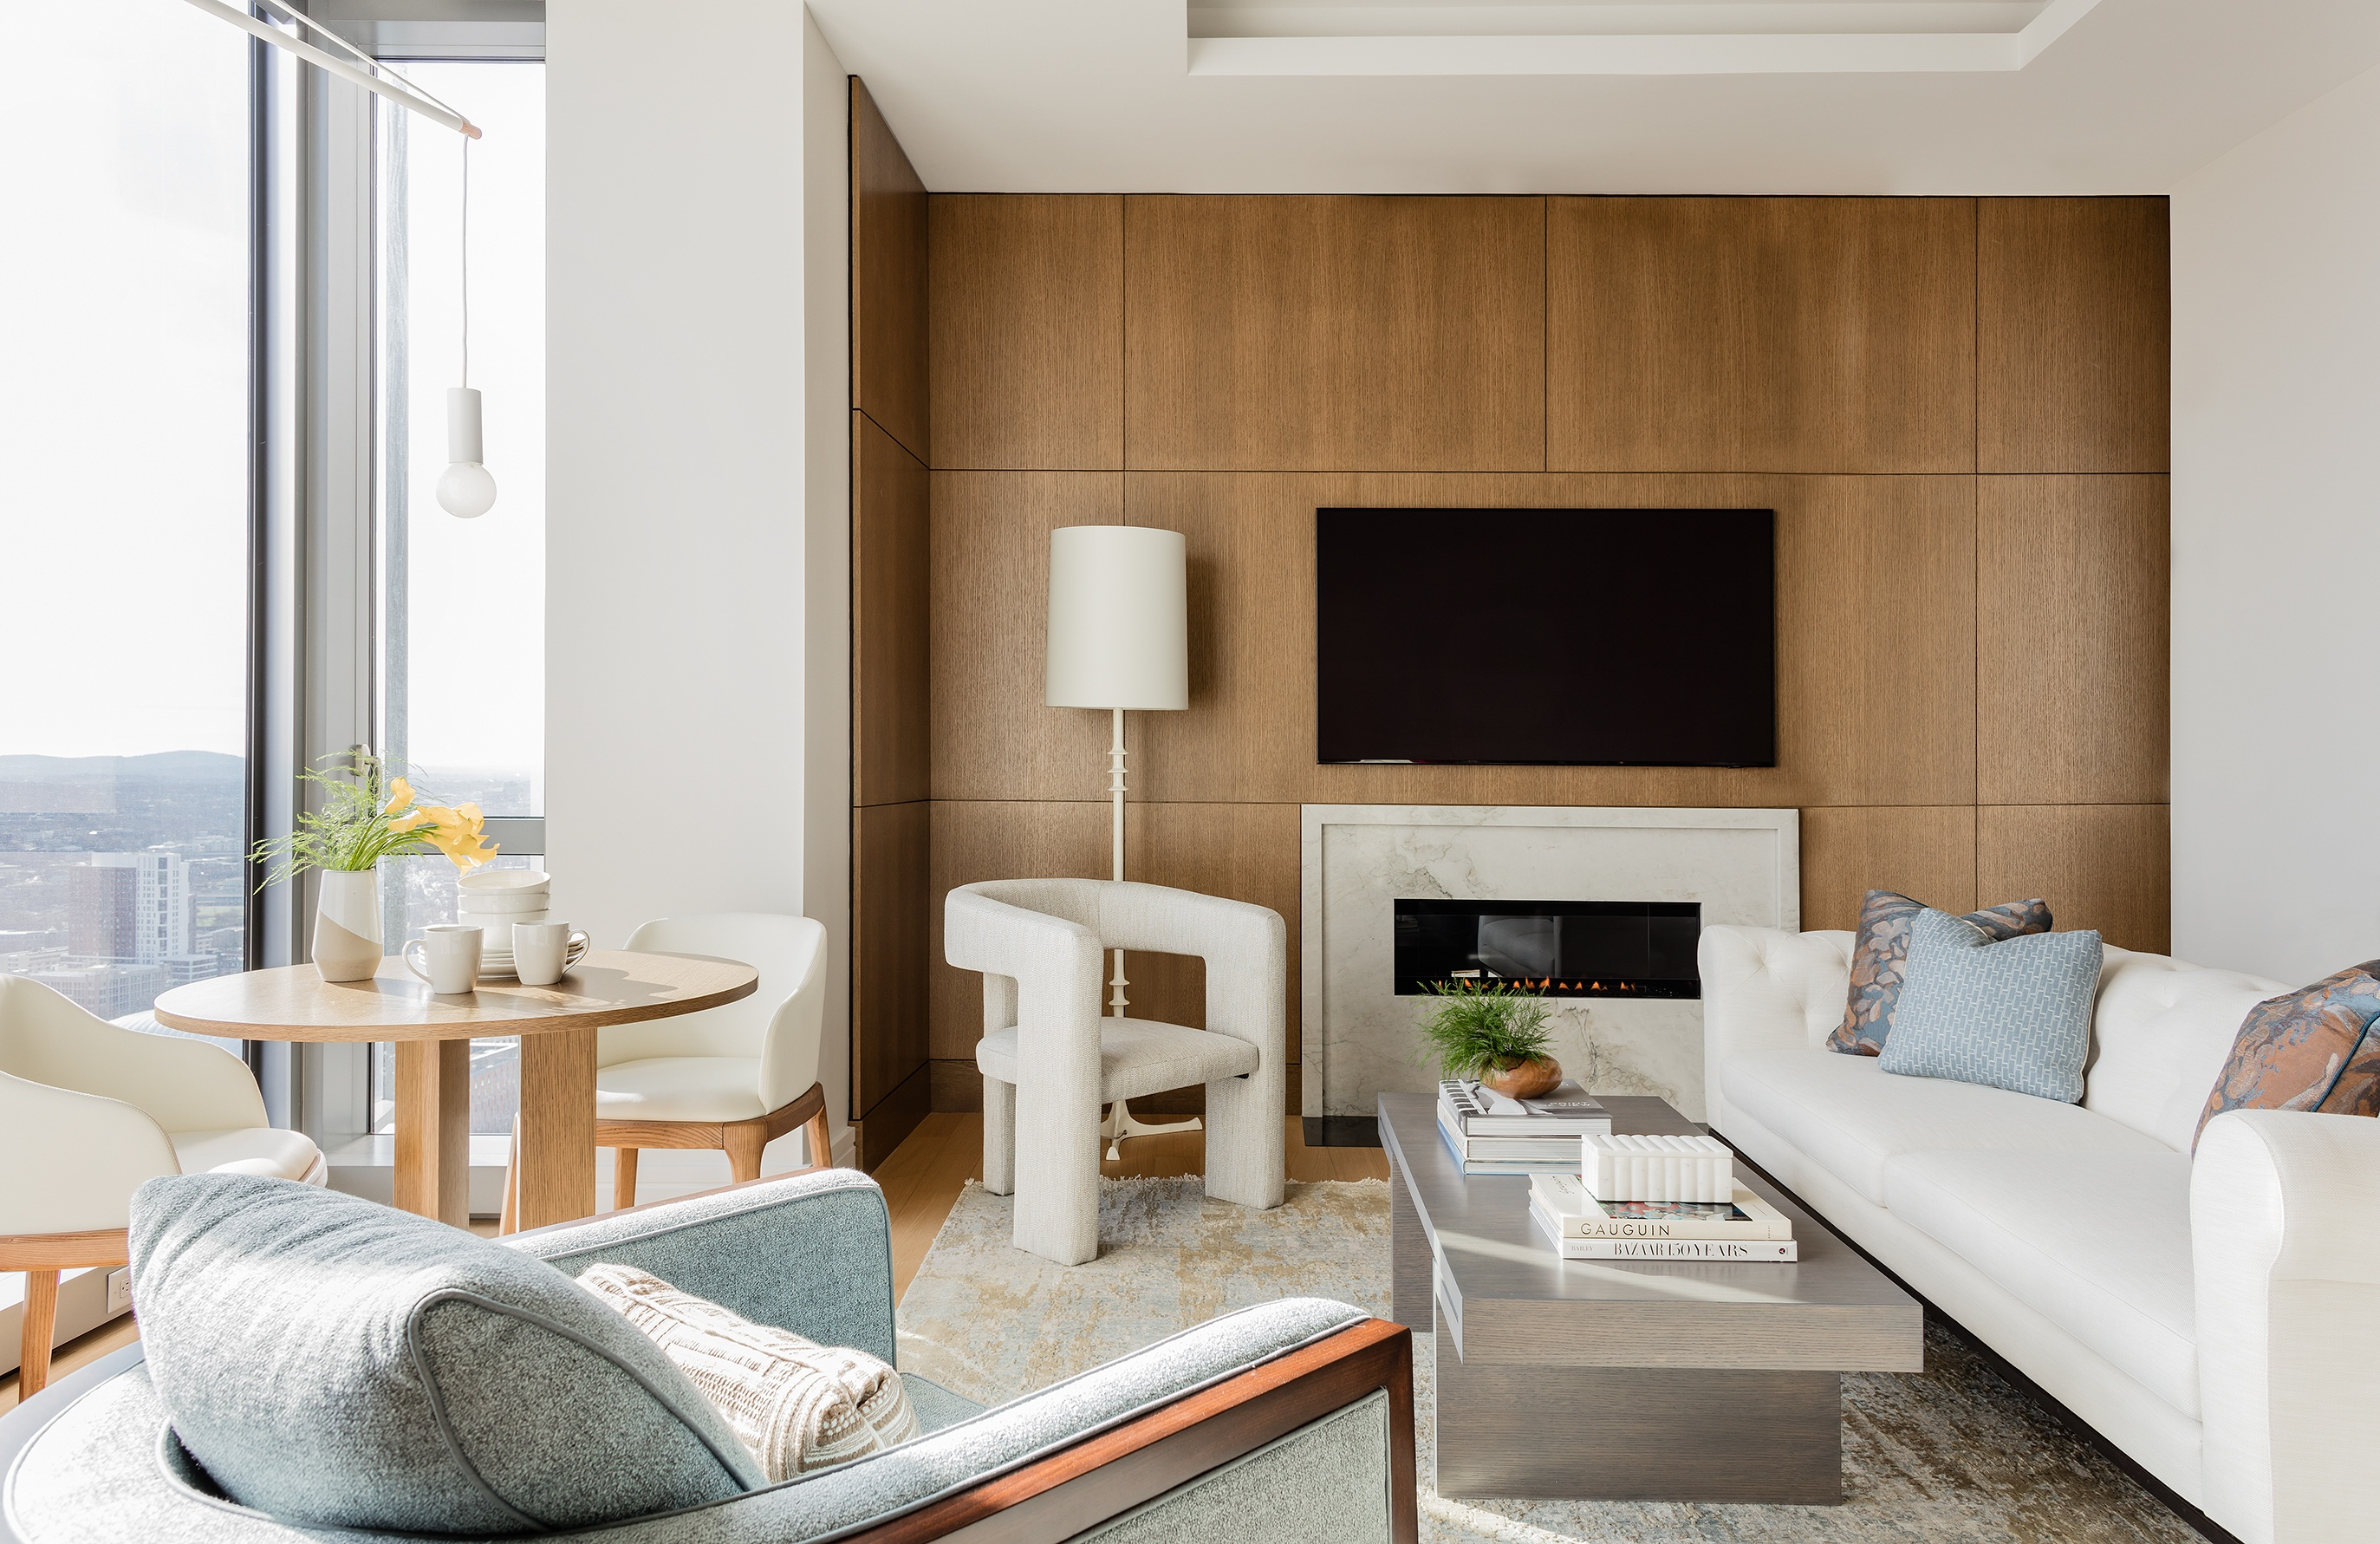 12 Inventive Ways This Design Team Maximized the Space in This